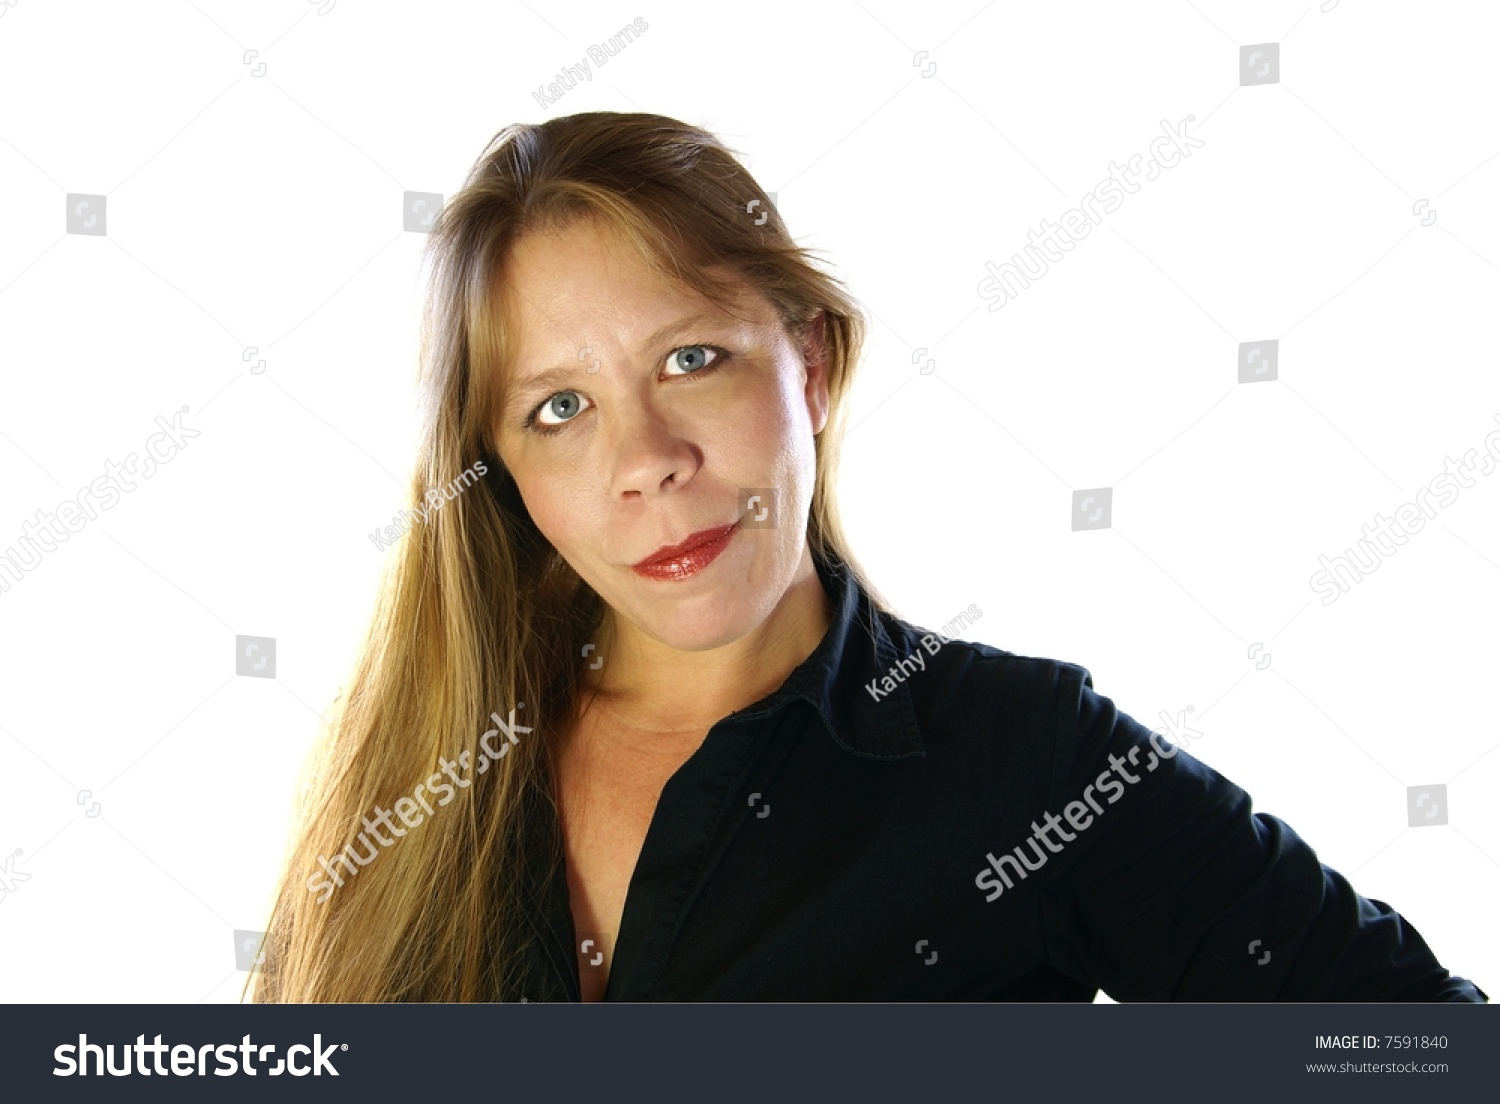 Are 30 year old woman attractive